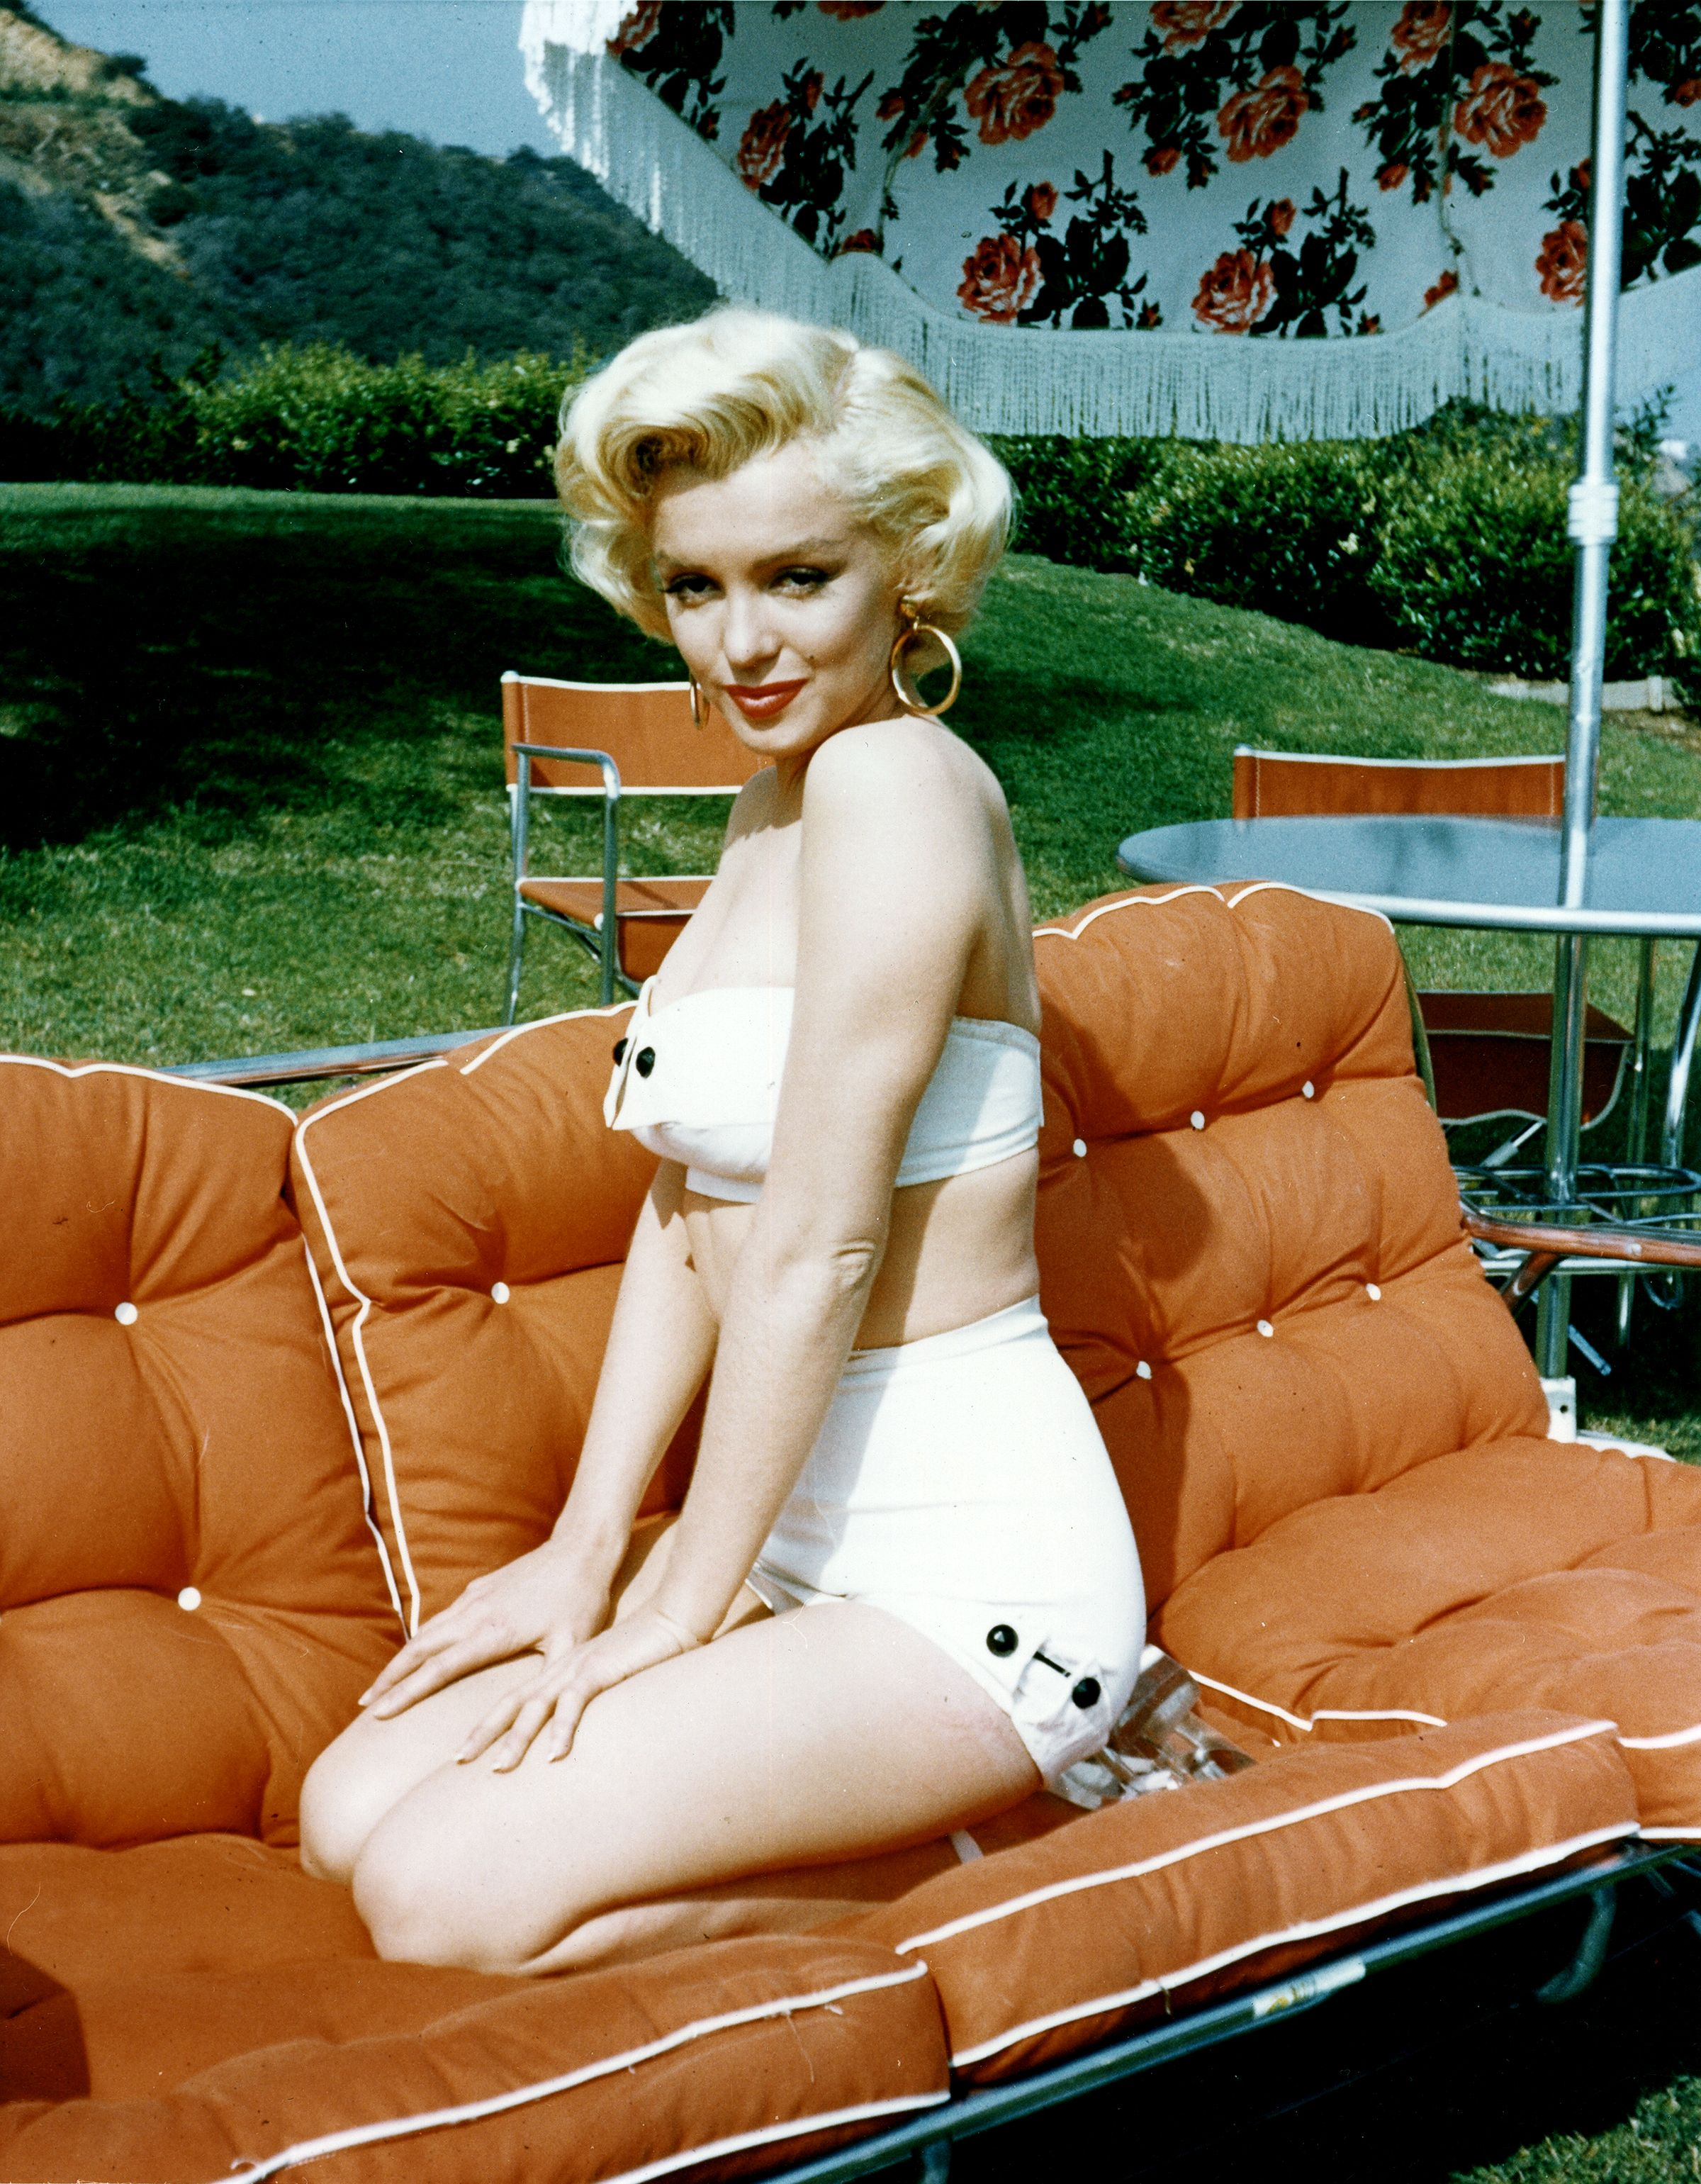 Marilyn Monroe posing poolside for a portrait in 1953 | Source: Getty Images